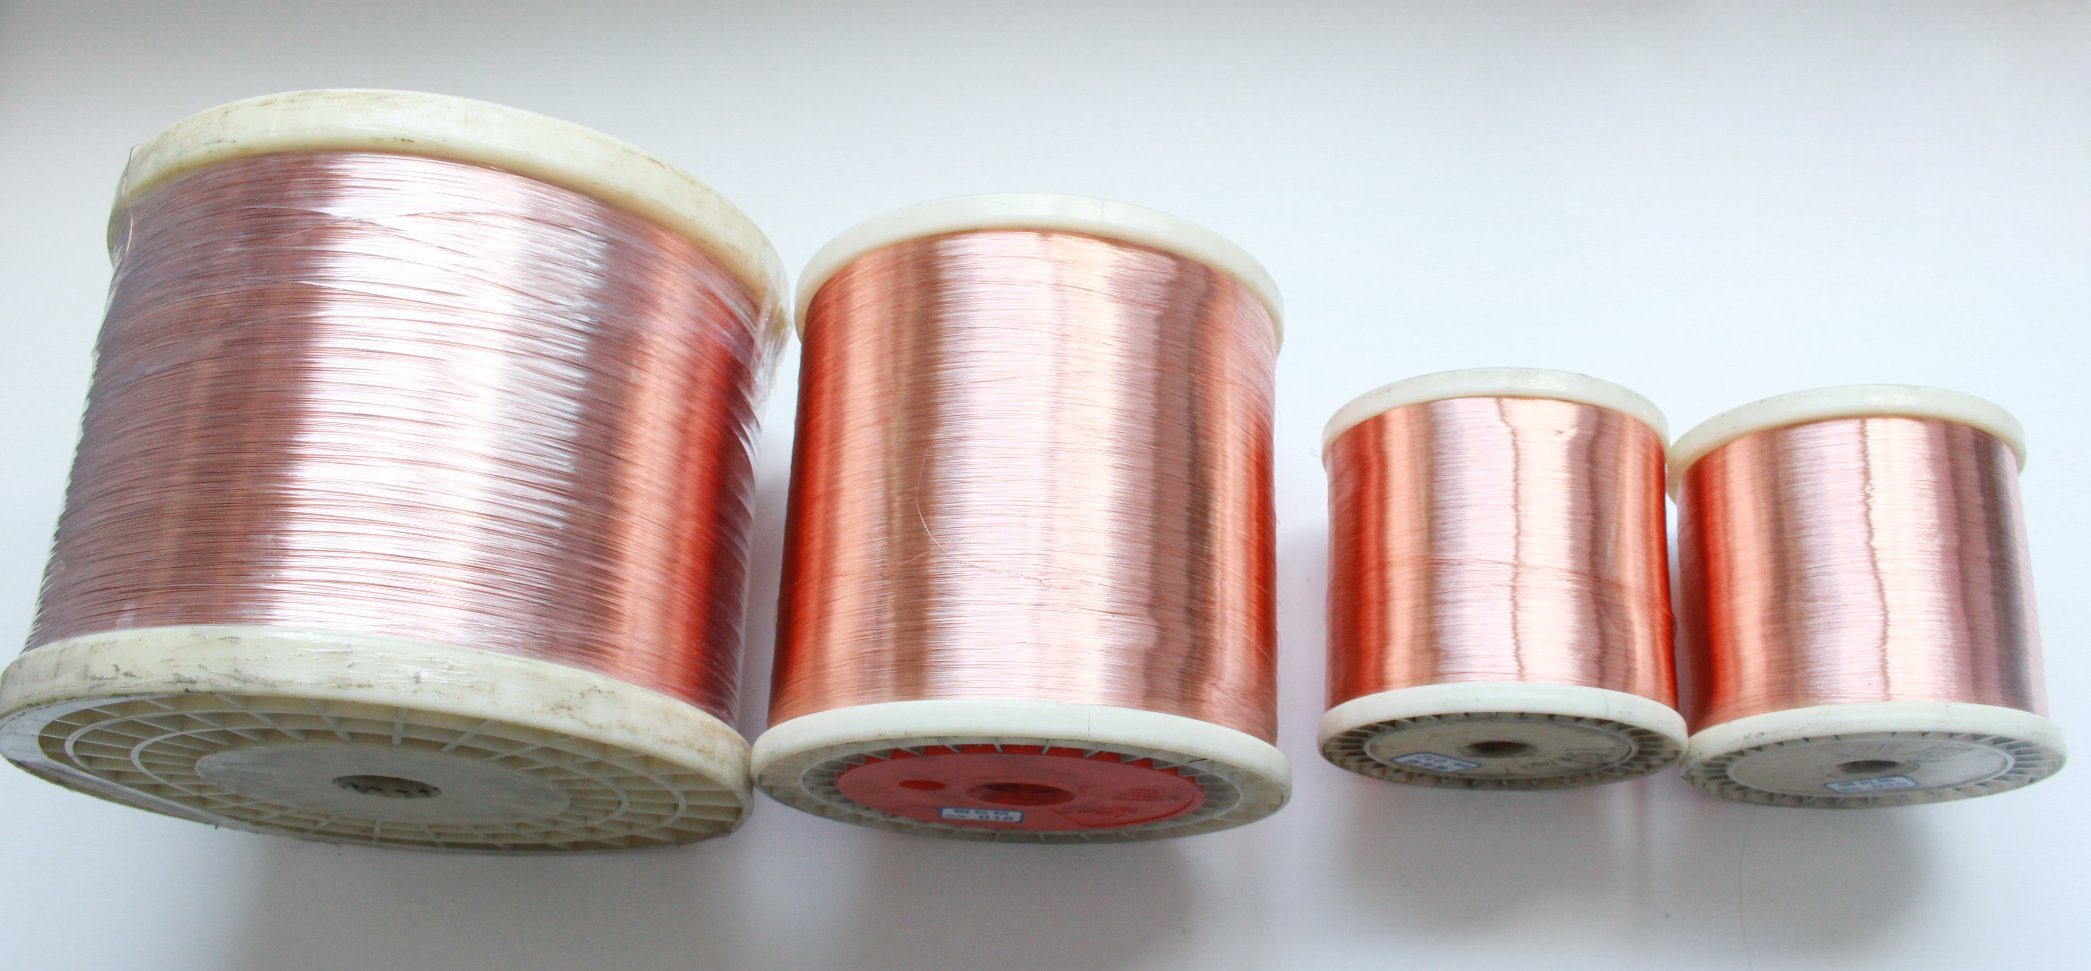 Clad Aluminum Wire Copper Wiring China Cca Photos Pictures Made 2091x971